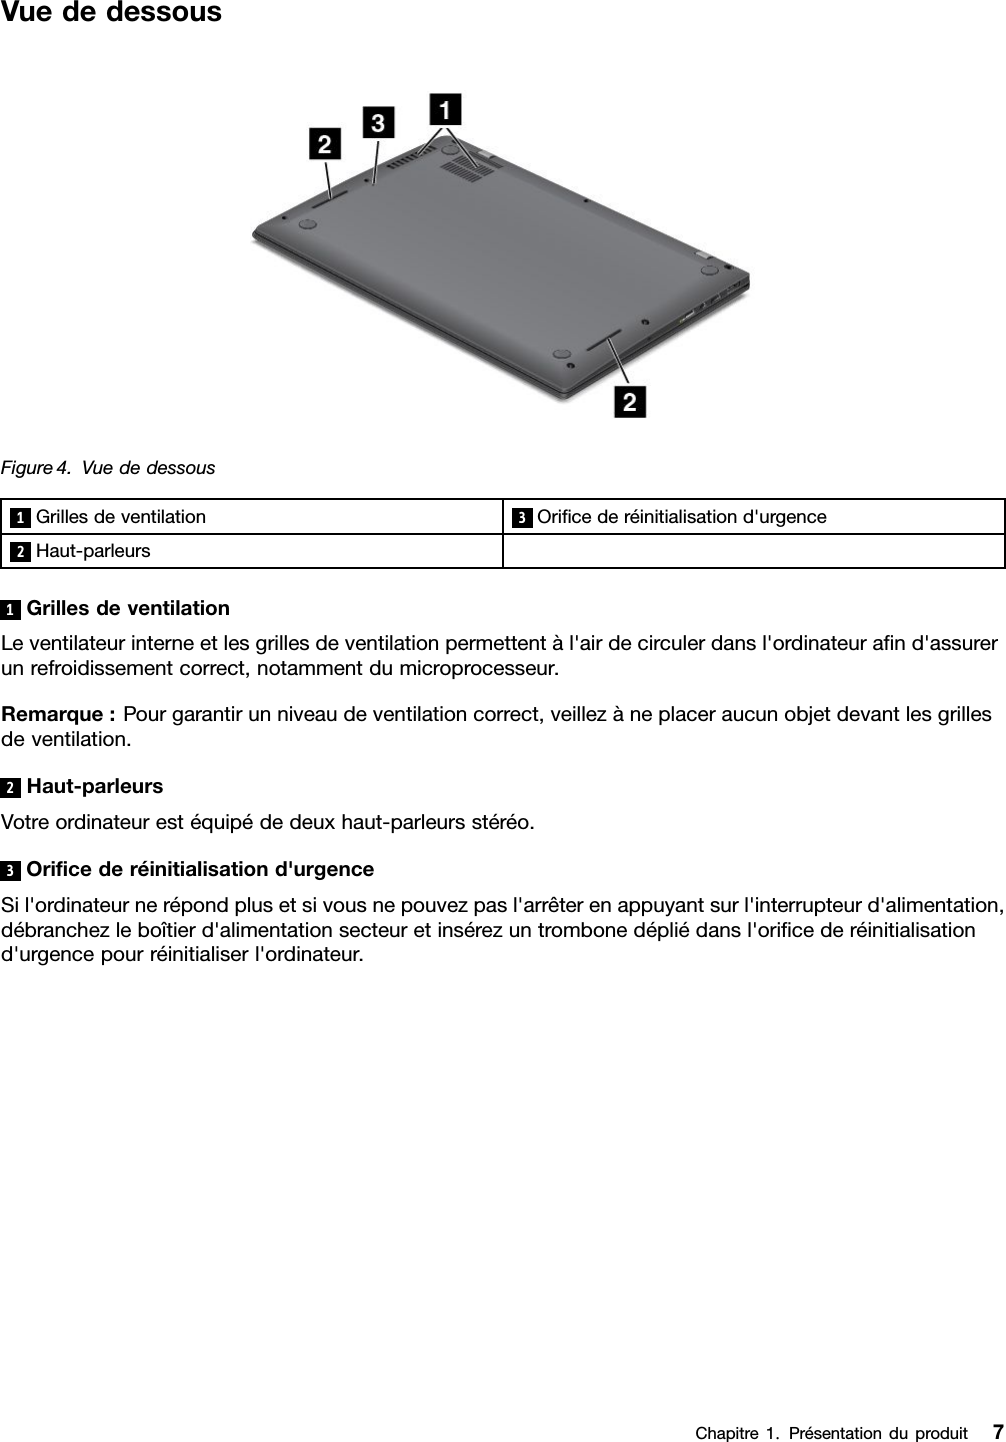 Boitier Electromagnetique Anti Humidite lenovo x1 carbon ug fr user manual (french) guide think pad